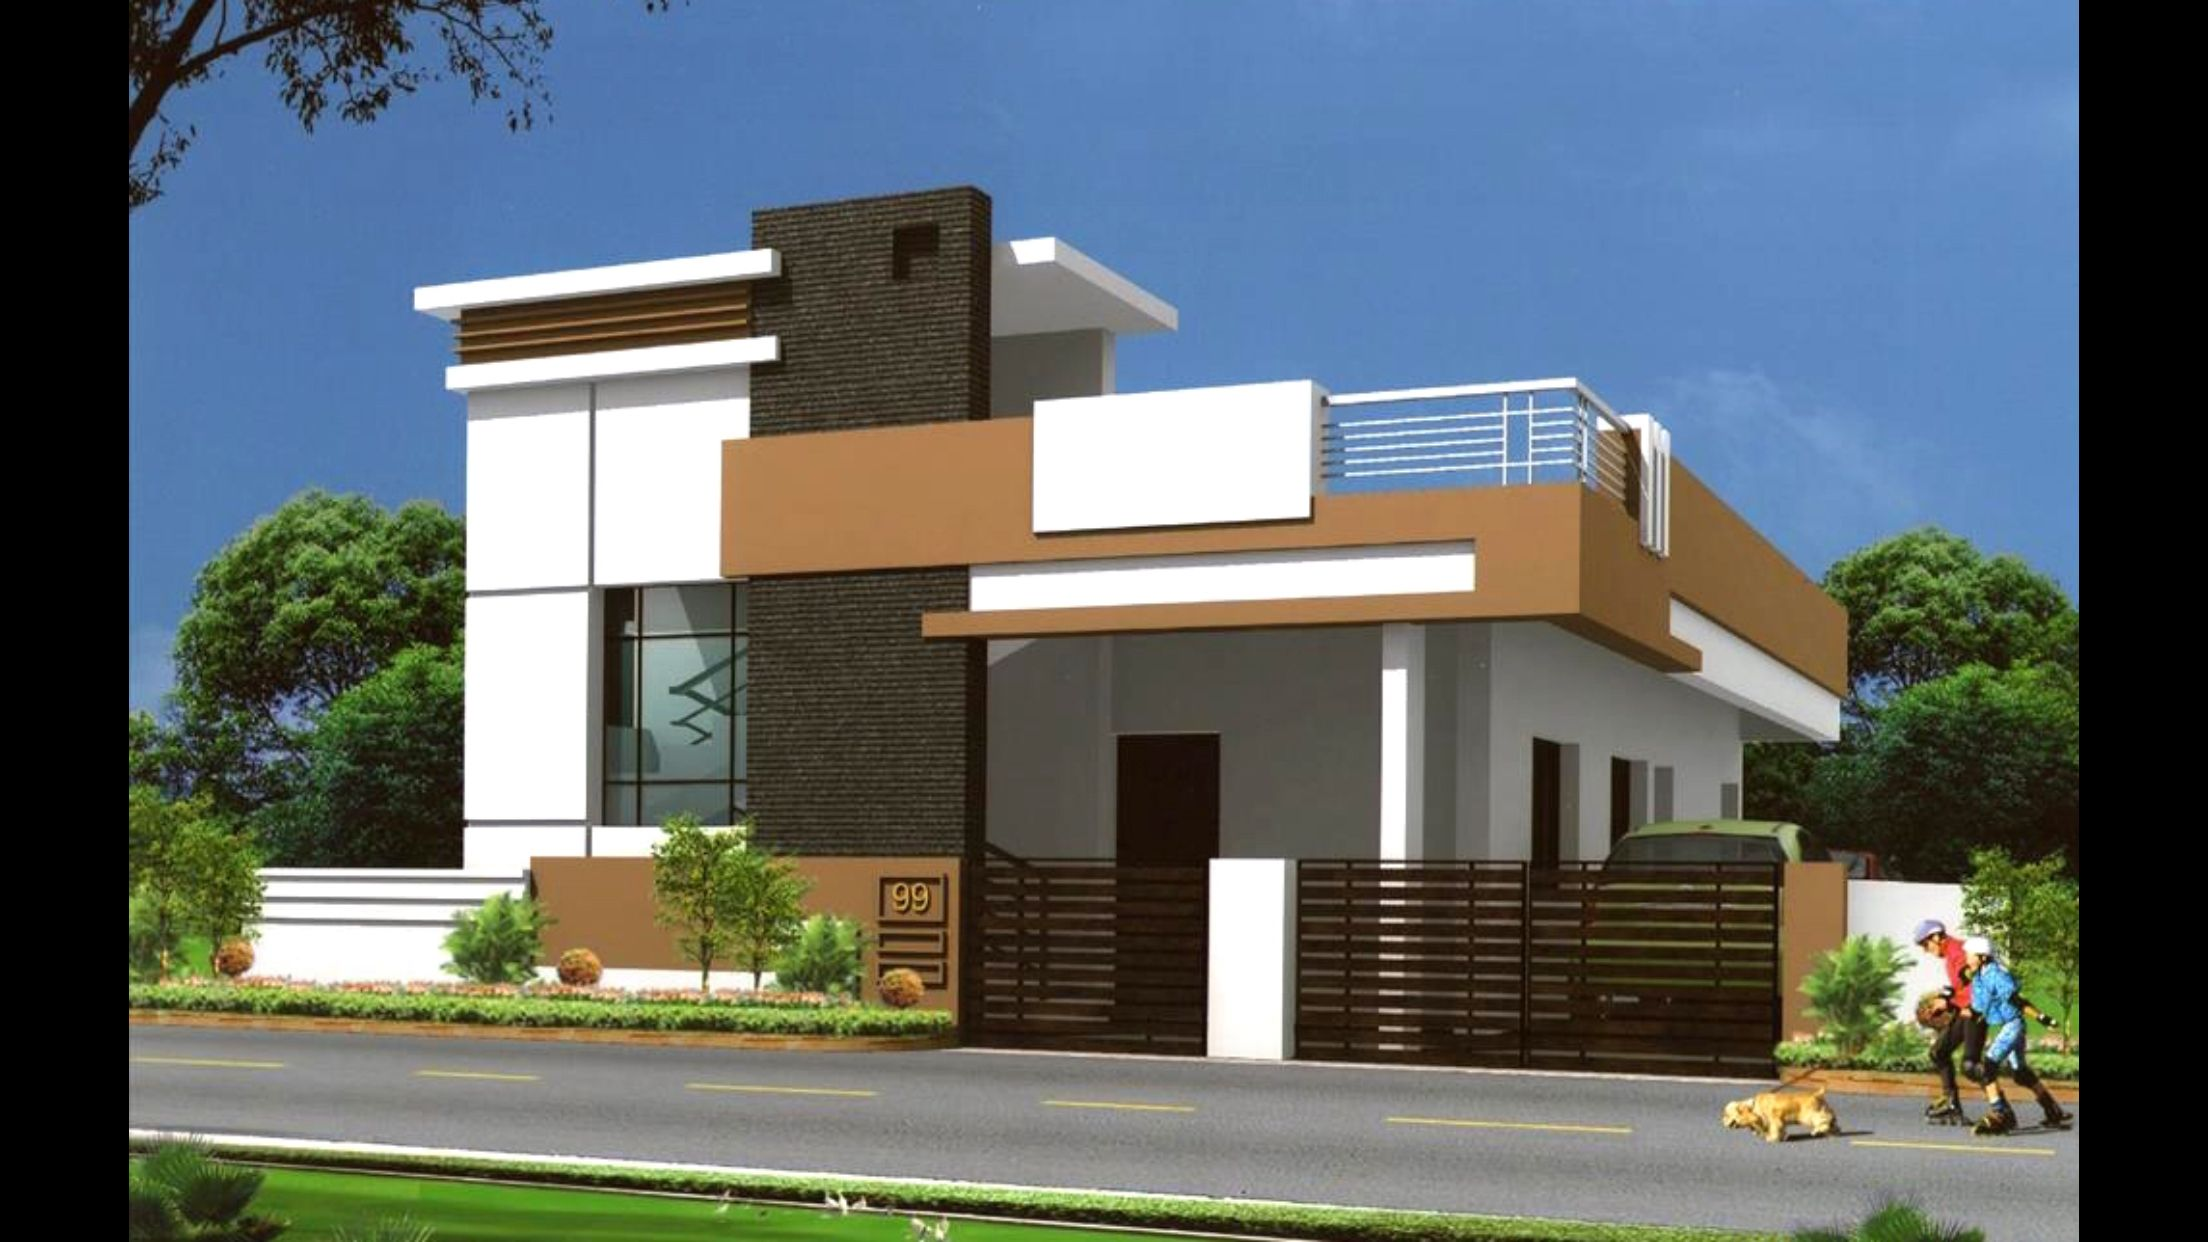 Ground Floor Elevation Colors : Ground floor house architectural designs